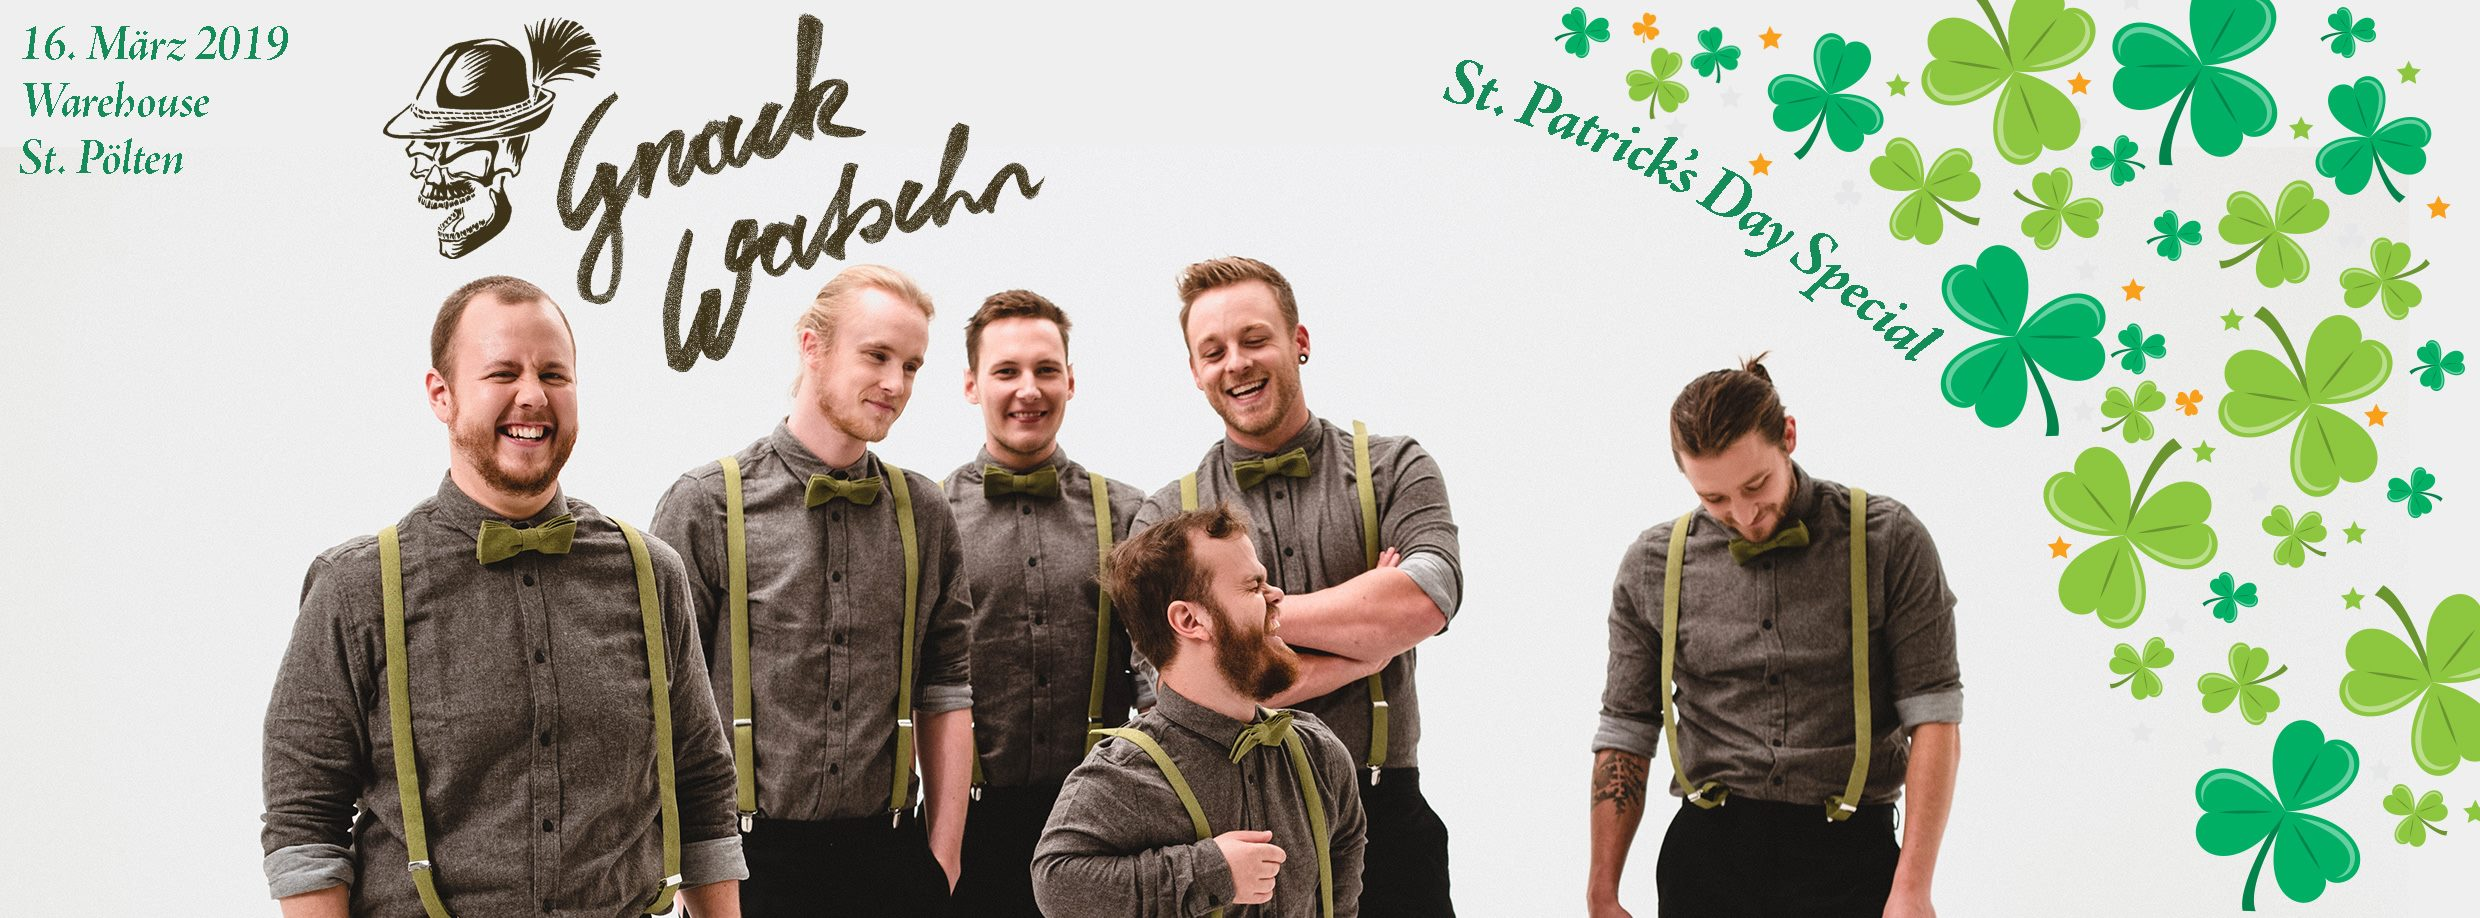 Gnackwatschn Live – St.Patrick's Day Special